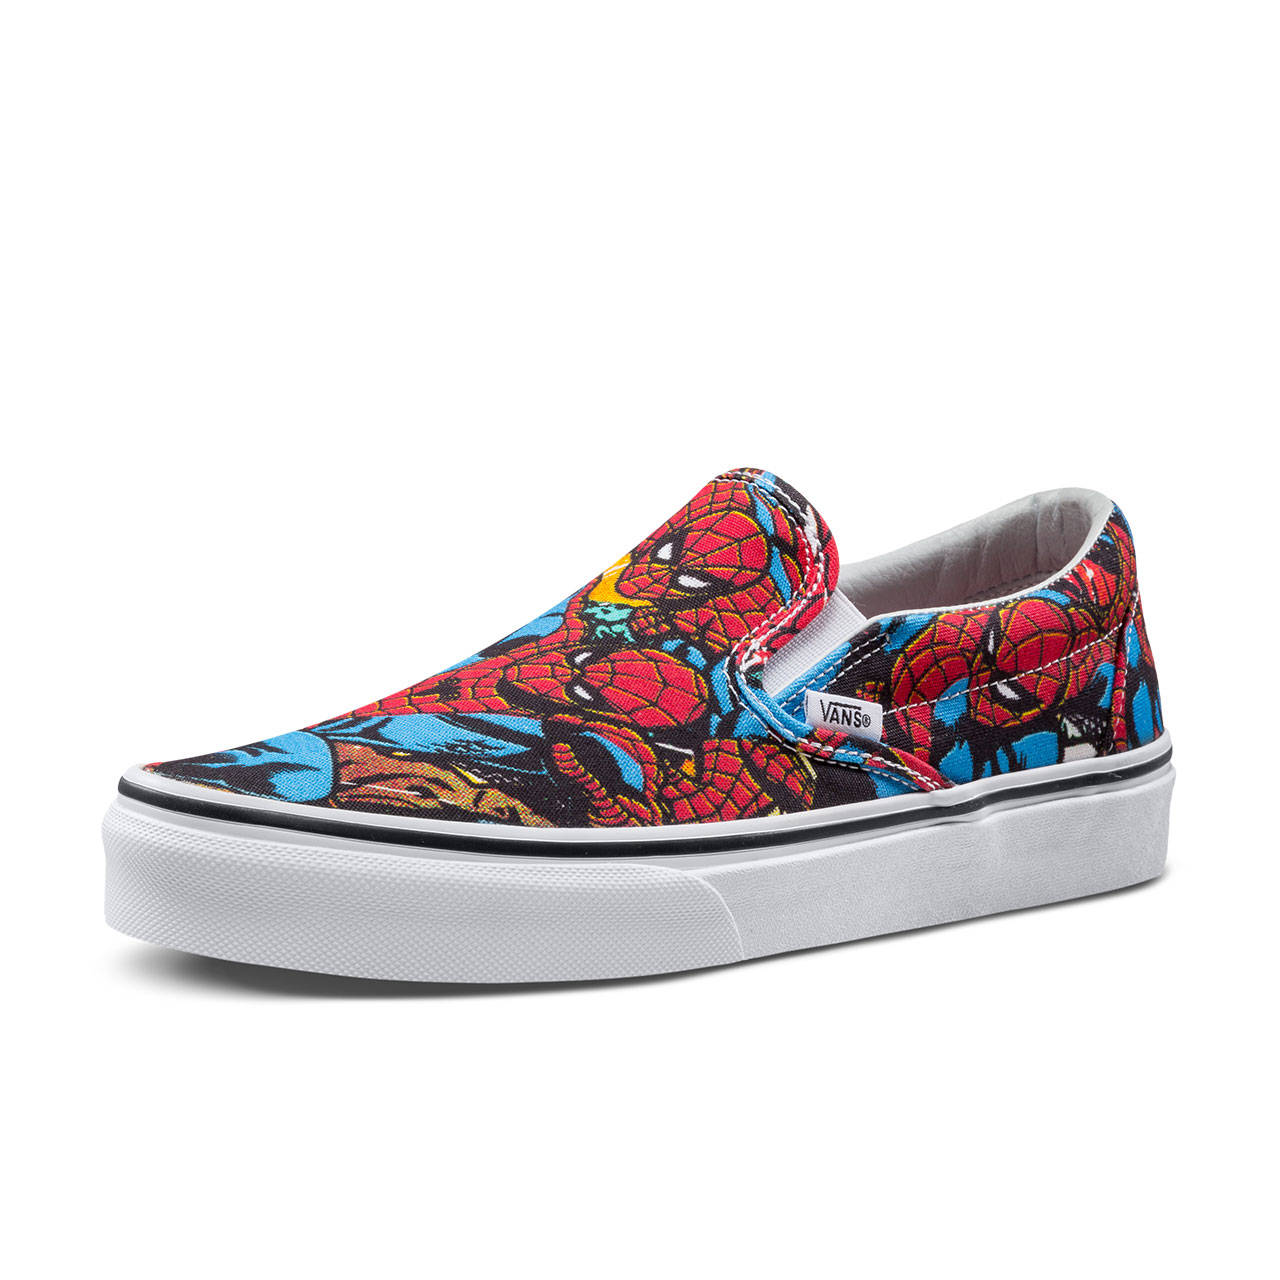 Original New Arrival Vans X Marvel Men s   Women s Classic Slip-On Low-top  Skateboarding Shoes Sneakers Canvas VN0A38F79H7 a7b9765ab